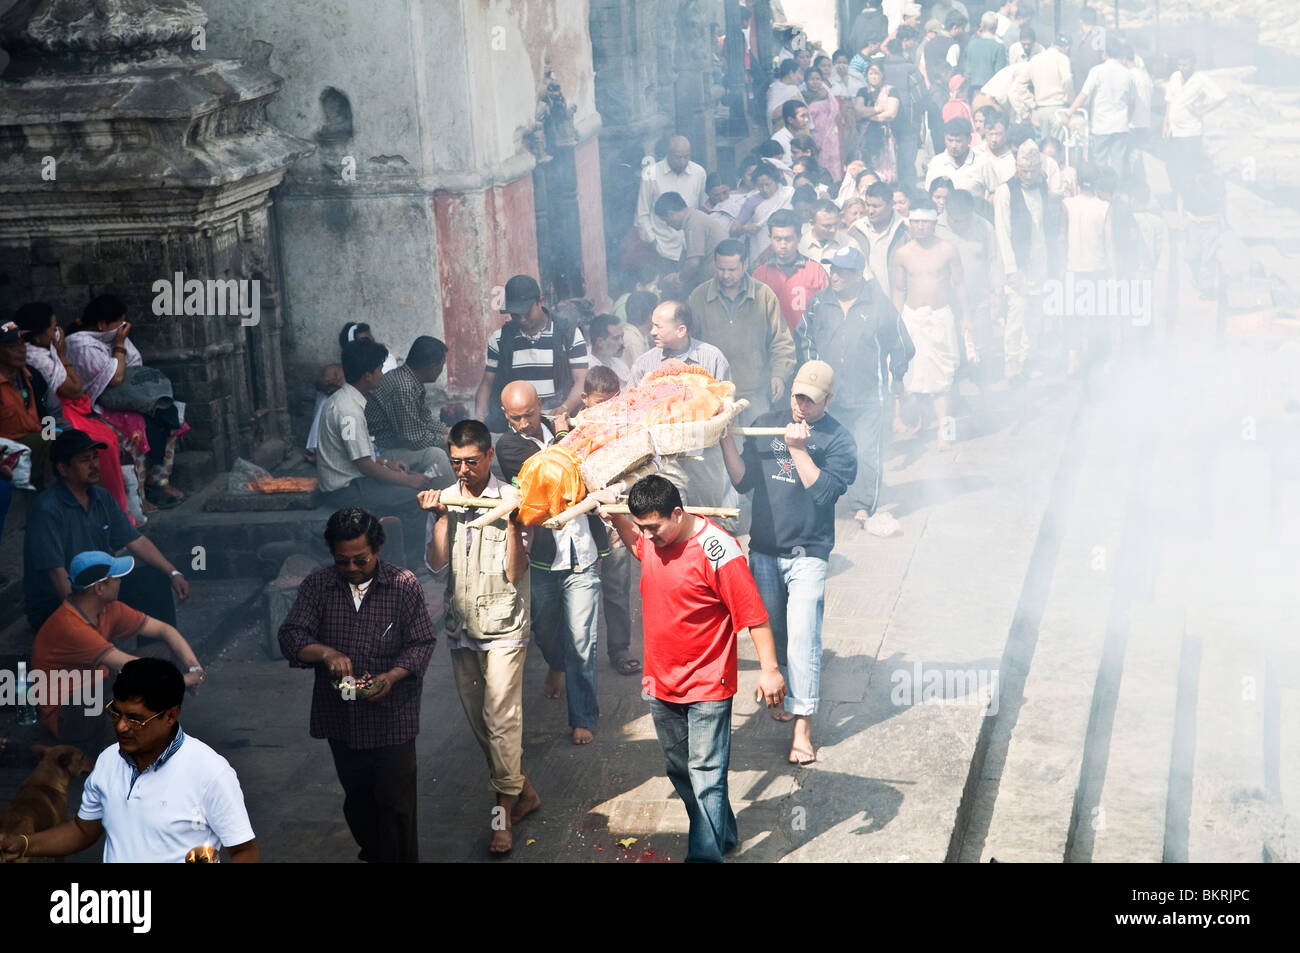 A body headed for cremation in Kathmandu's Pashupatinath temple. - Stock Image